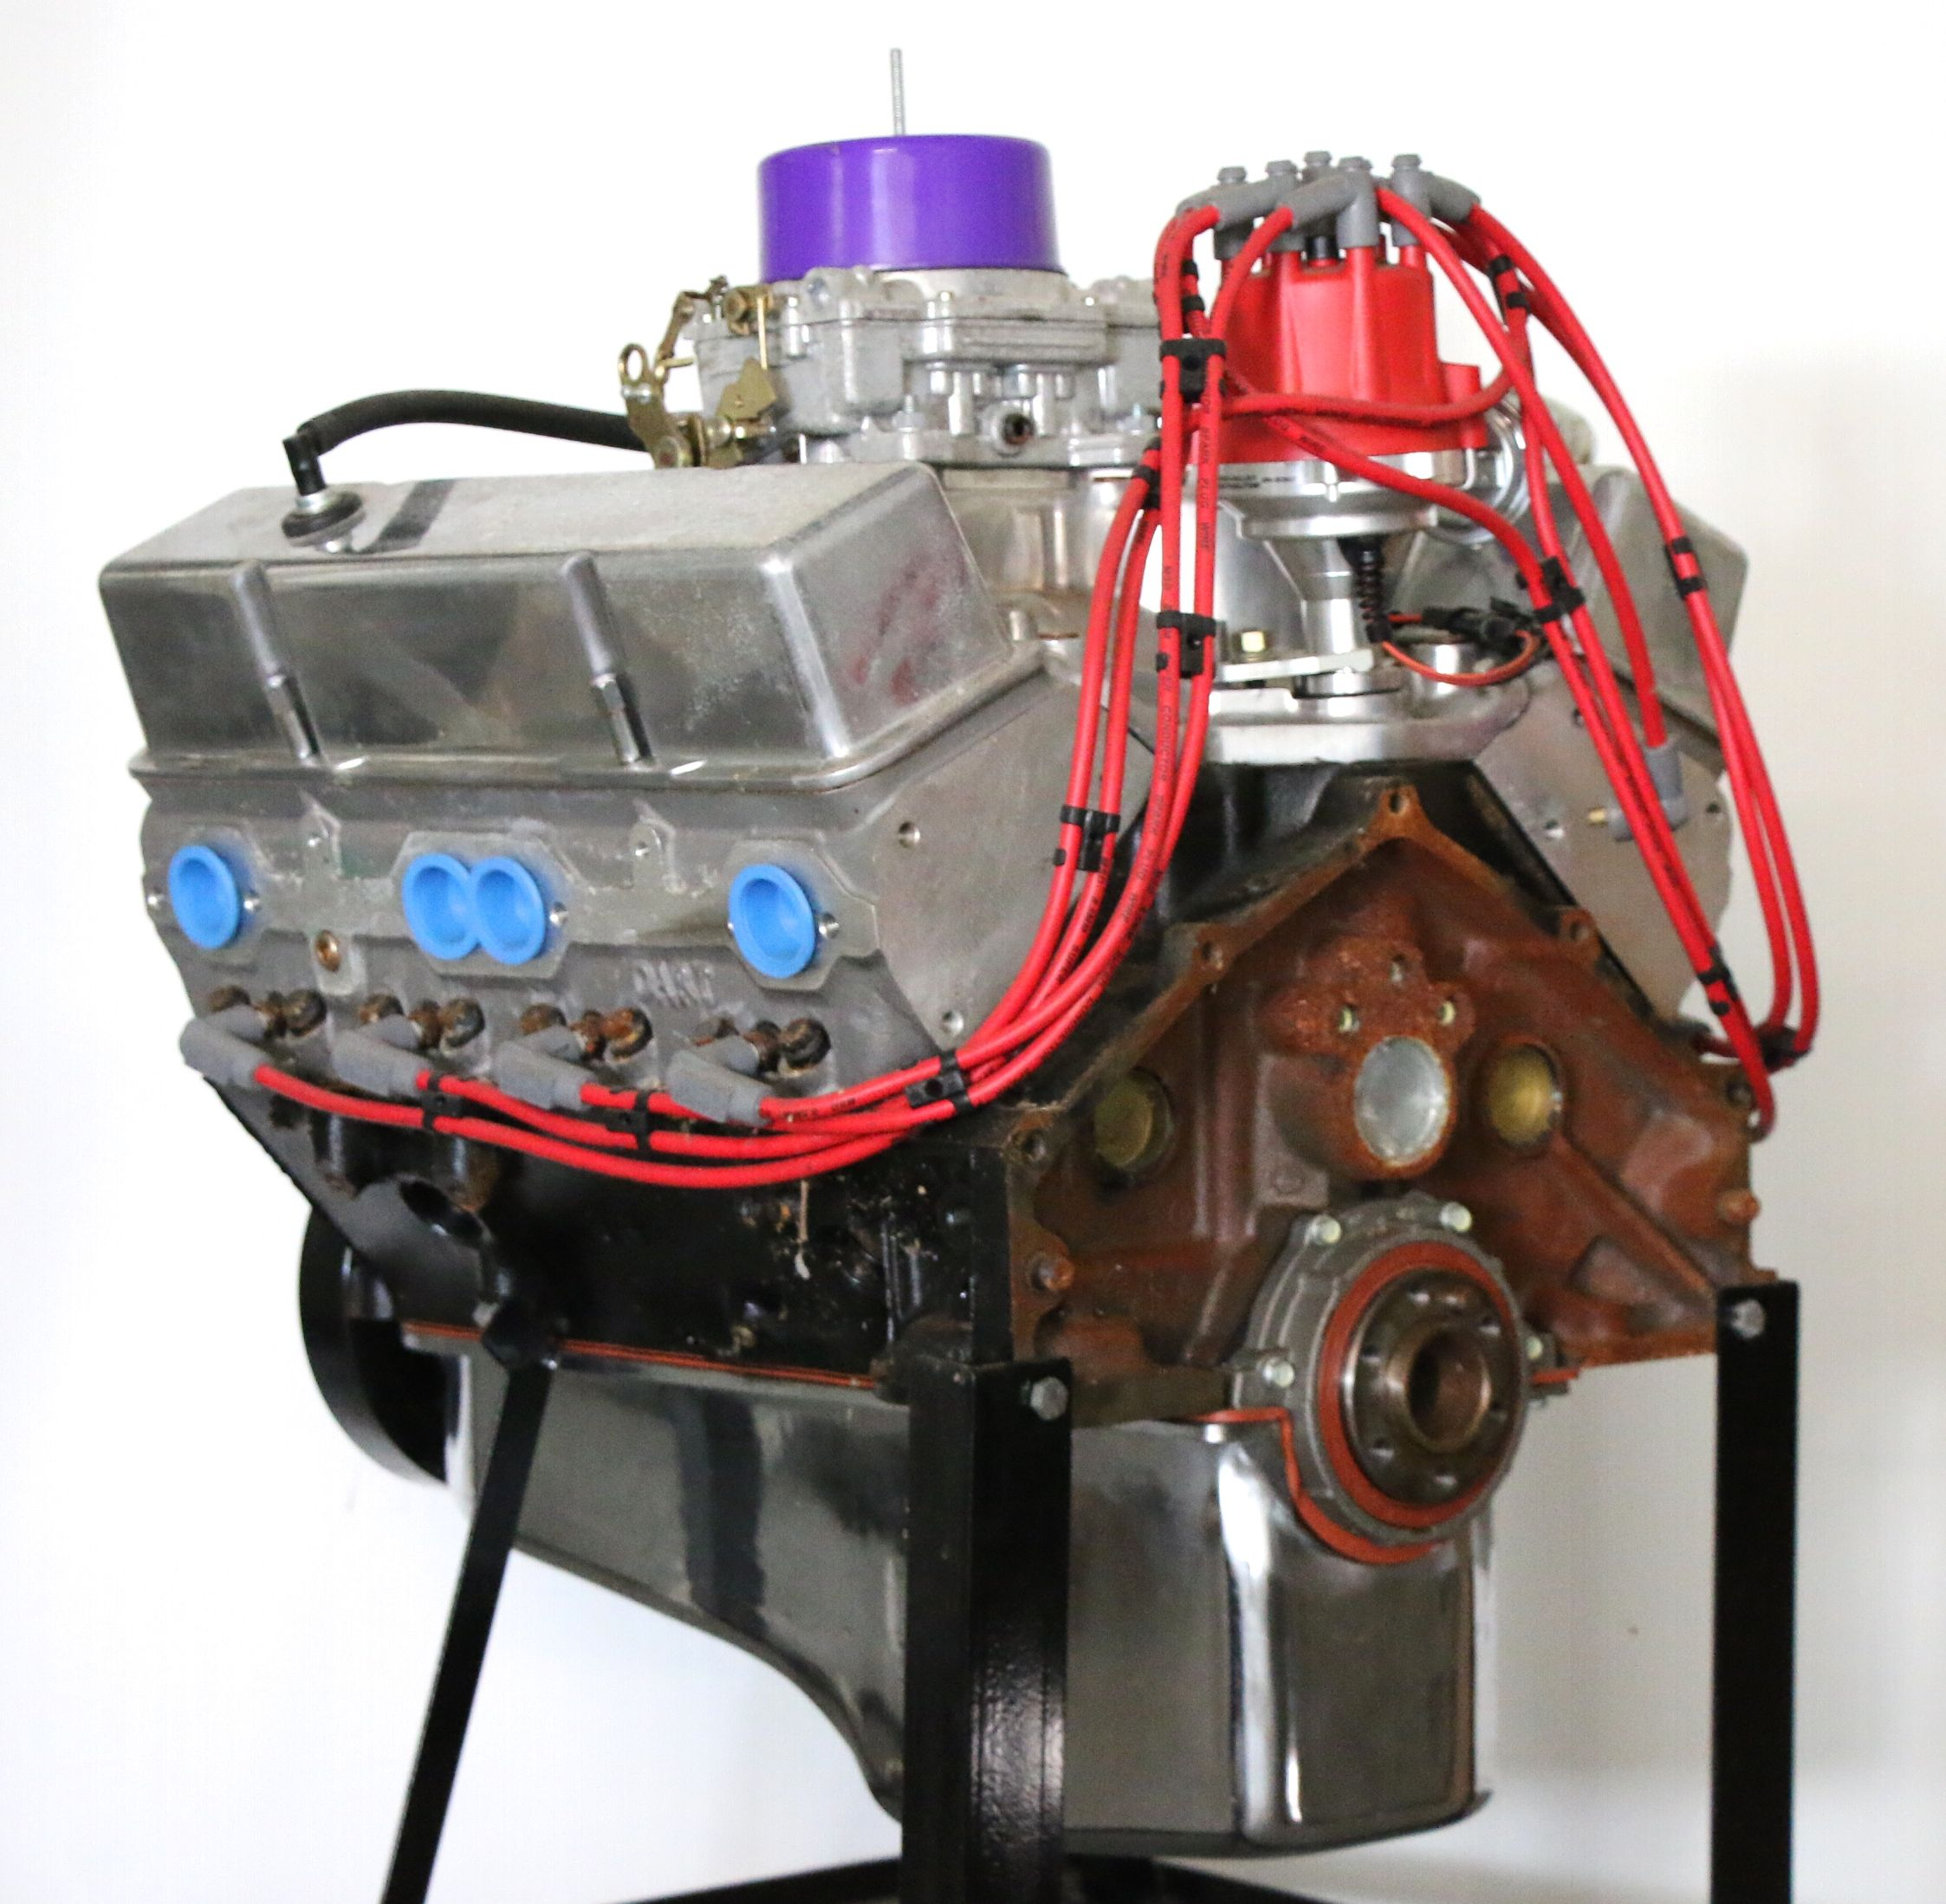 Modified Remanufactured Gm 350 Cubic Inch 5 7l V8 Engine